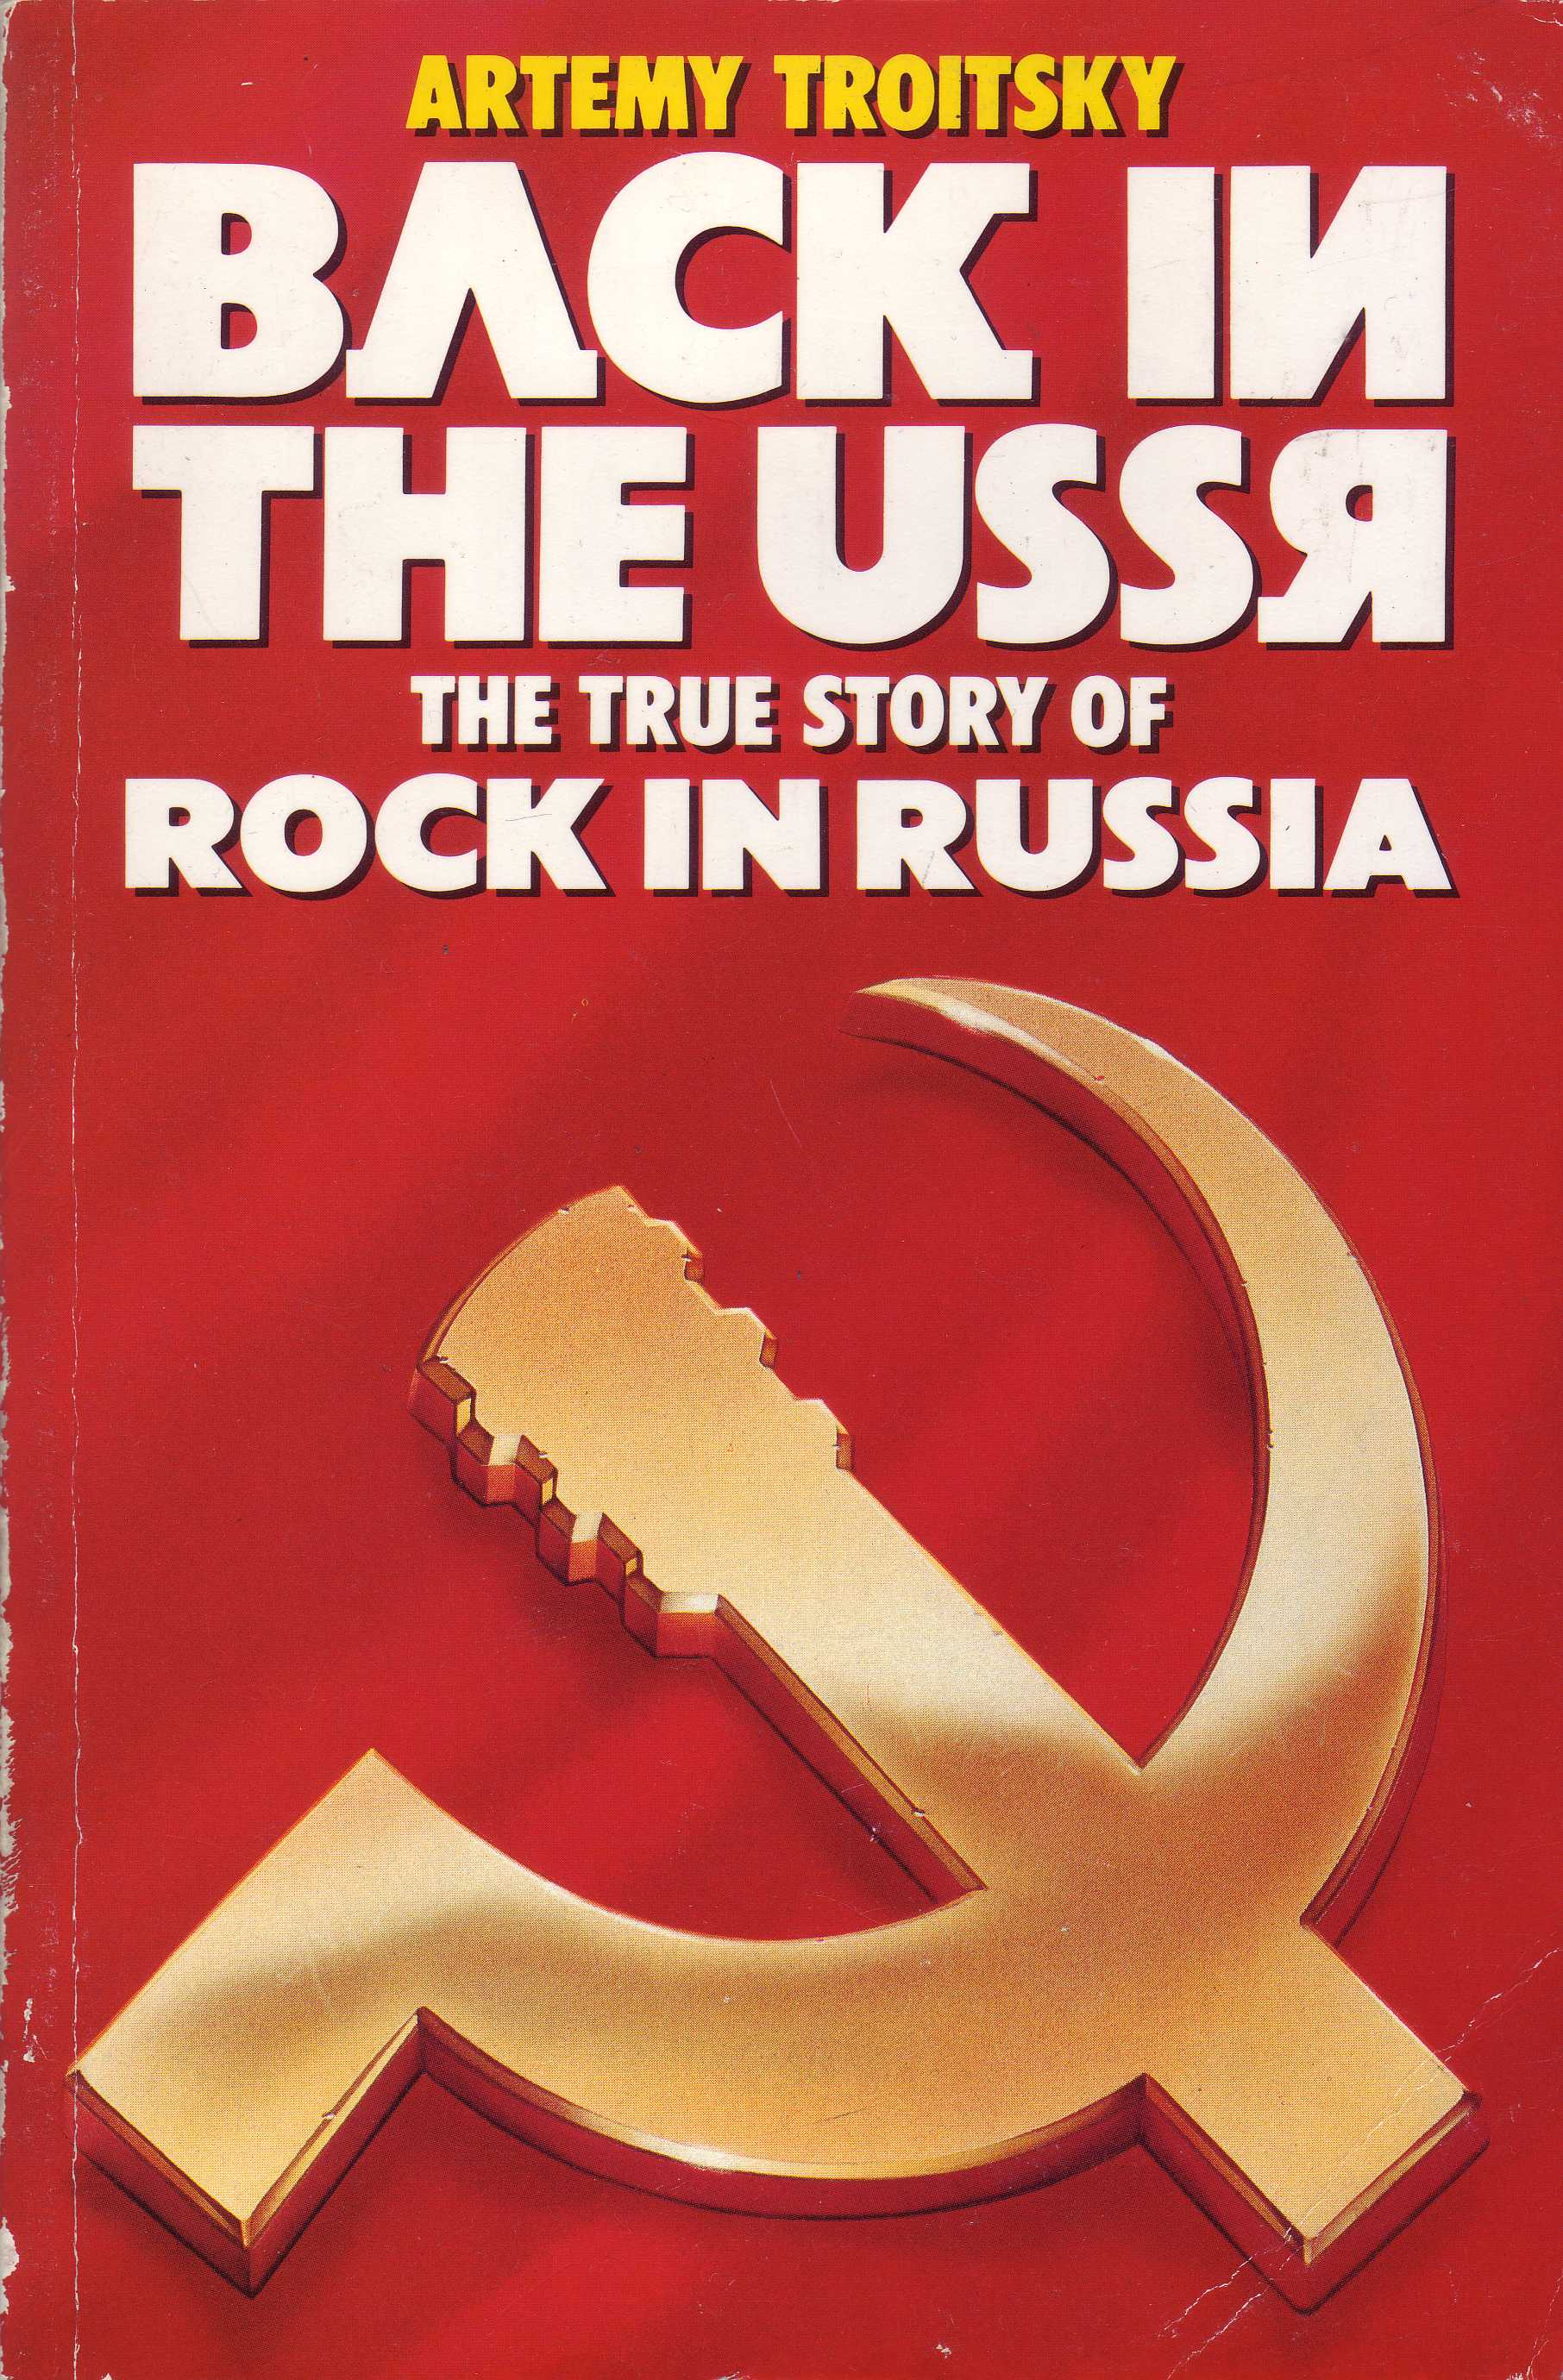 trotskys role in the soviet union The soviet union the butchers who ran the soviet union killed between 25 million [the black book of communism] and 60 million [rudolph j rummel] innocent humans - men, women and little children the monster stalin may be the greatest mass killer of all time.